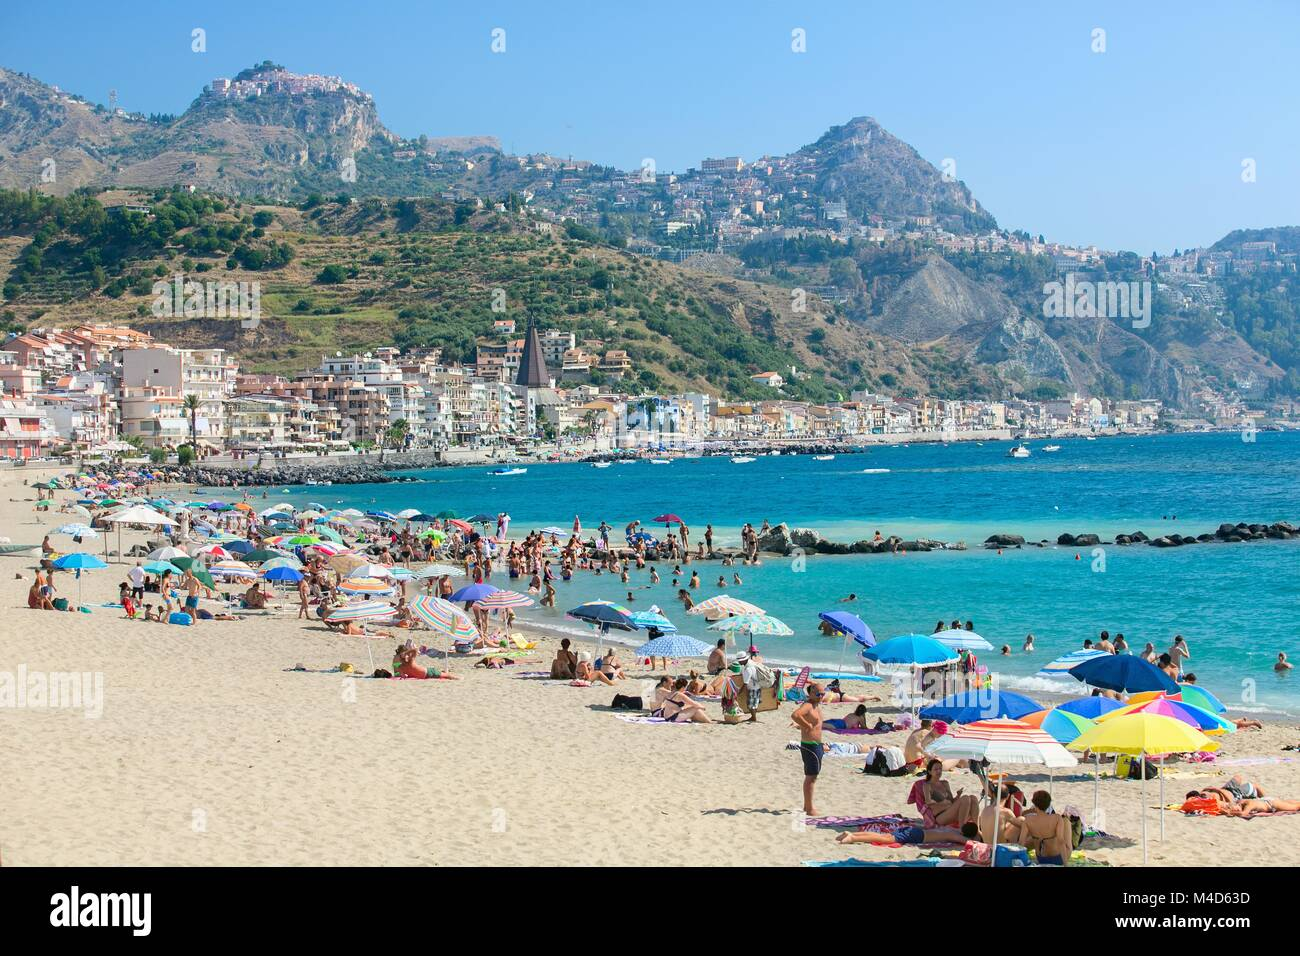 Giardini Naxos Beach Resort